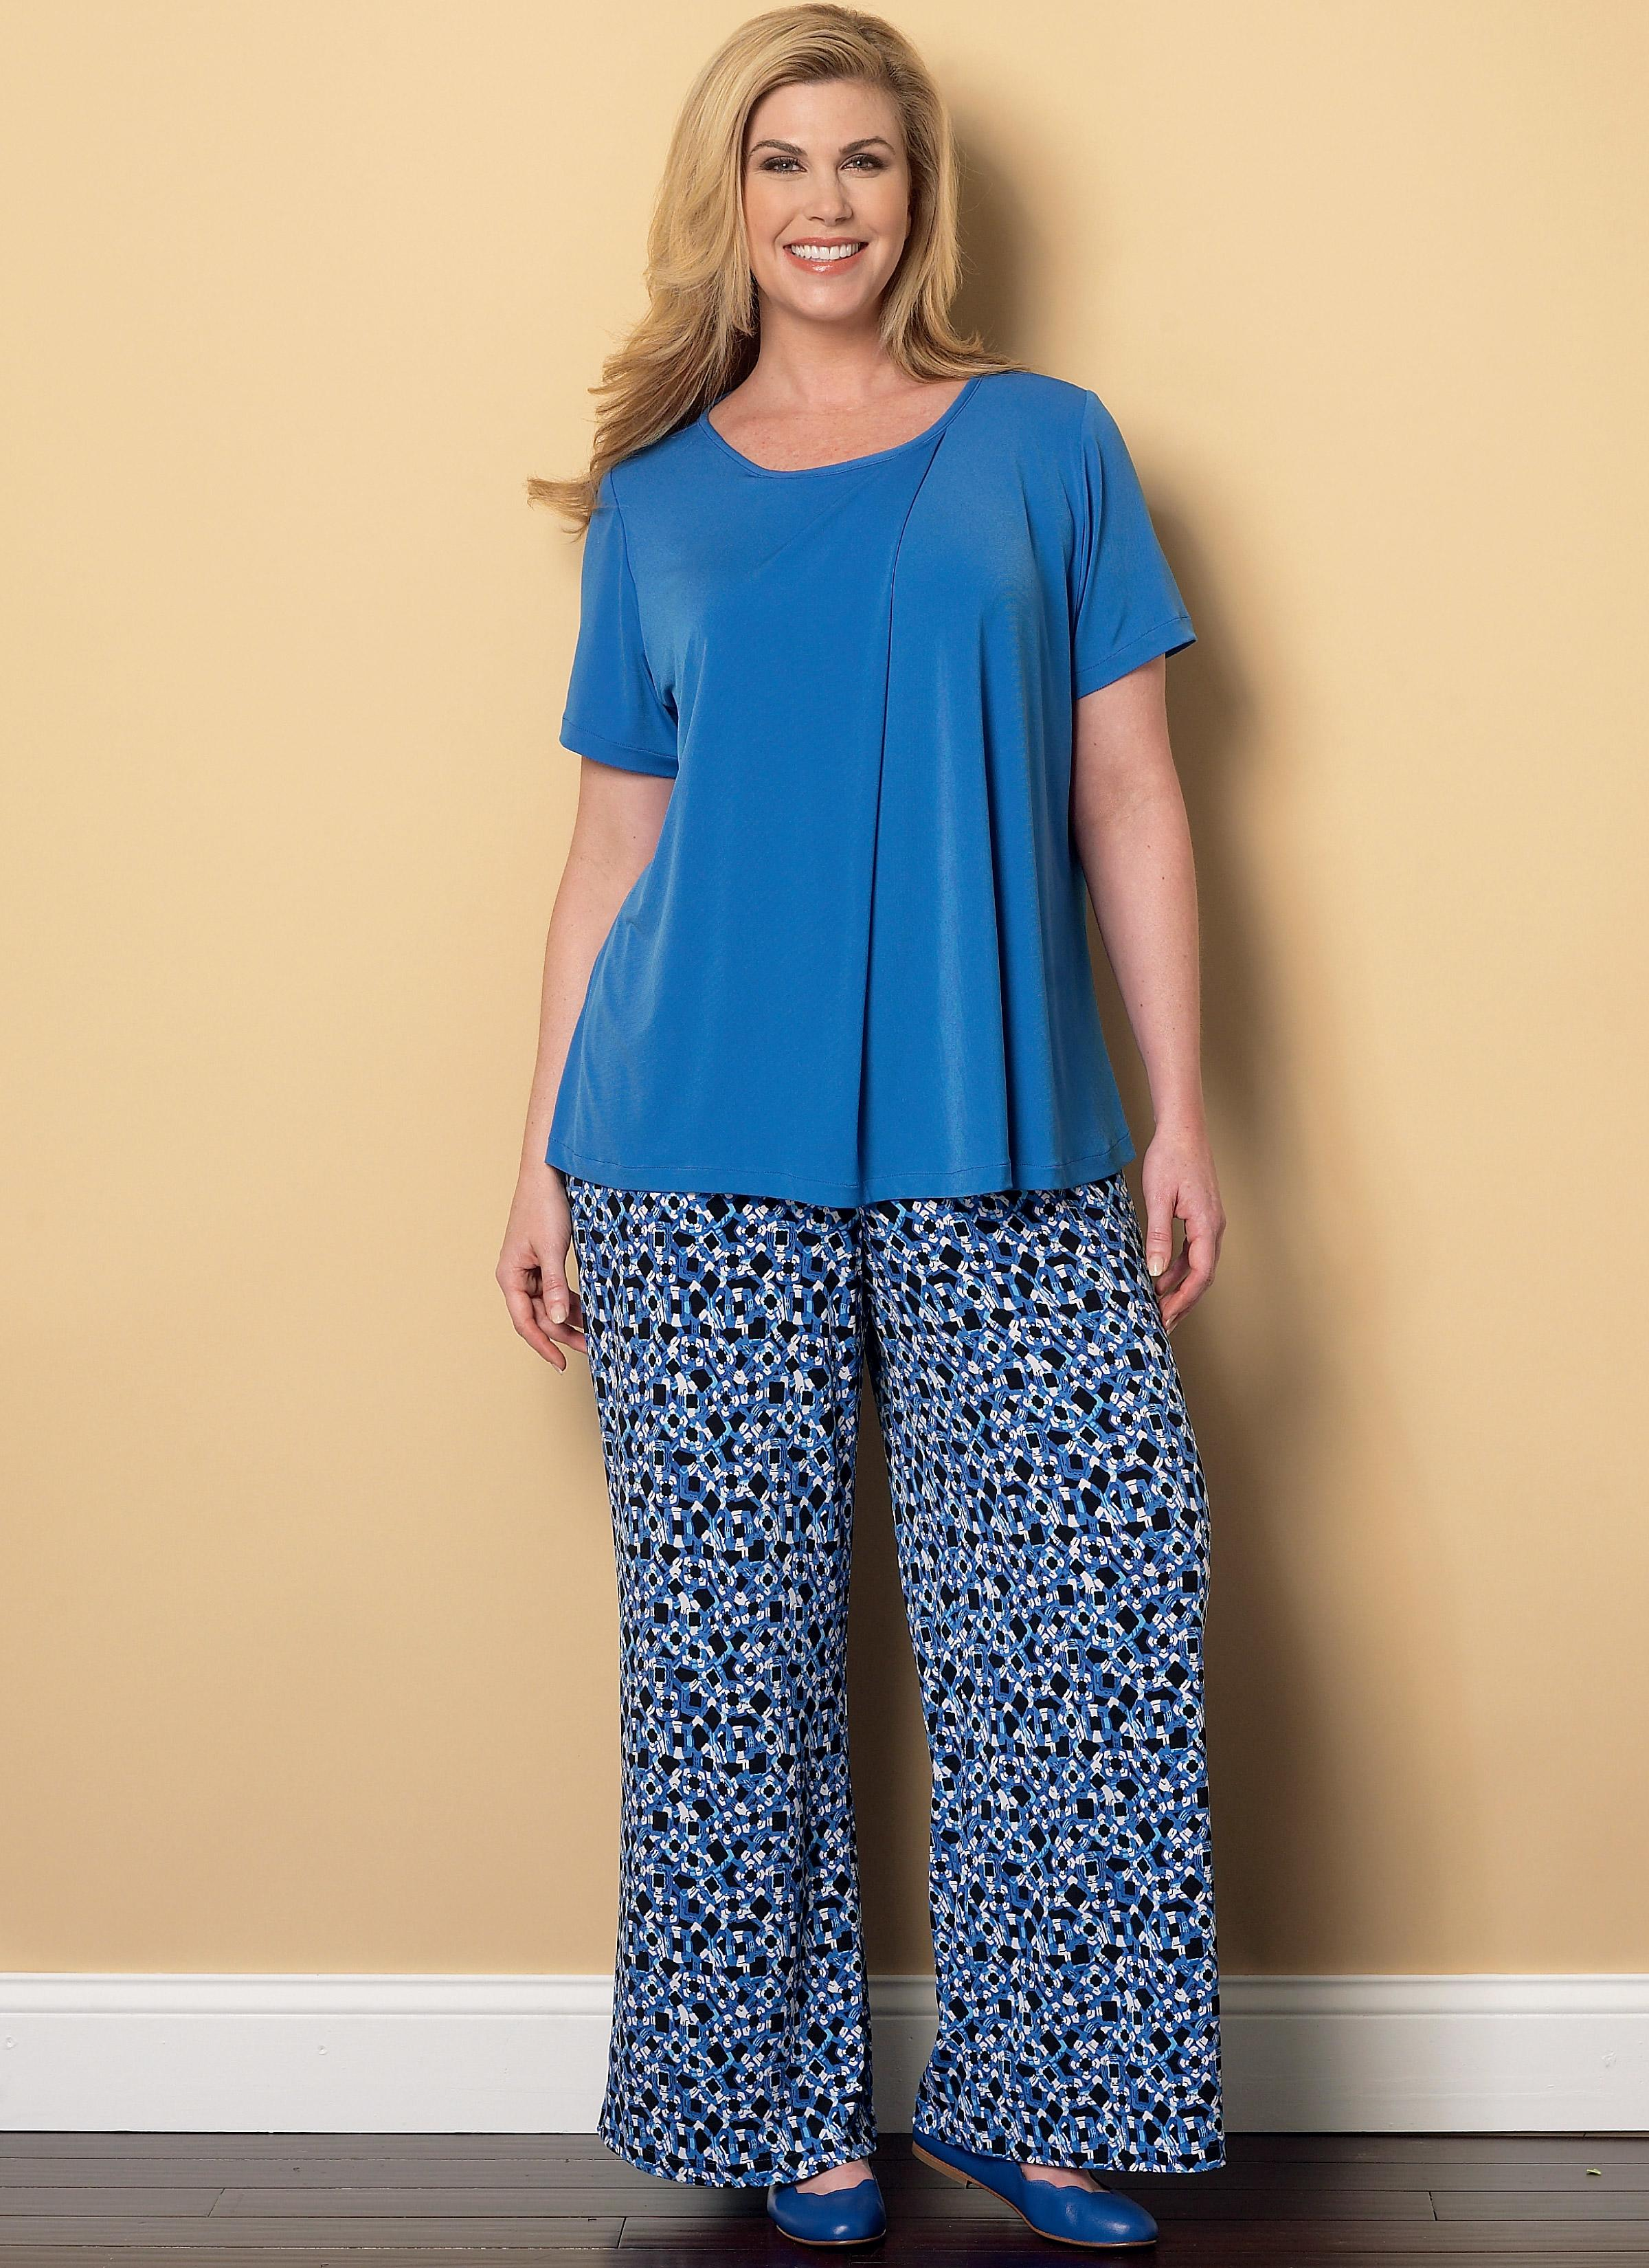 Butterick B6262 Misses'/Women's Loungewear